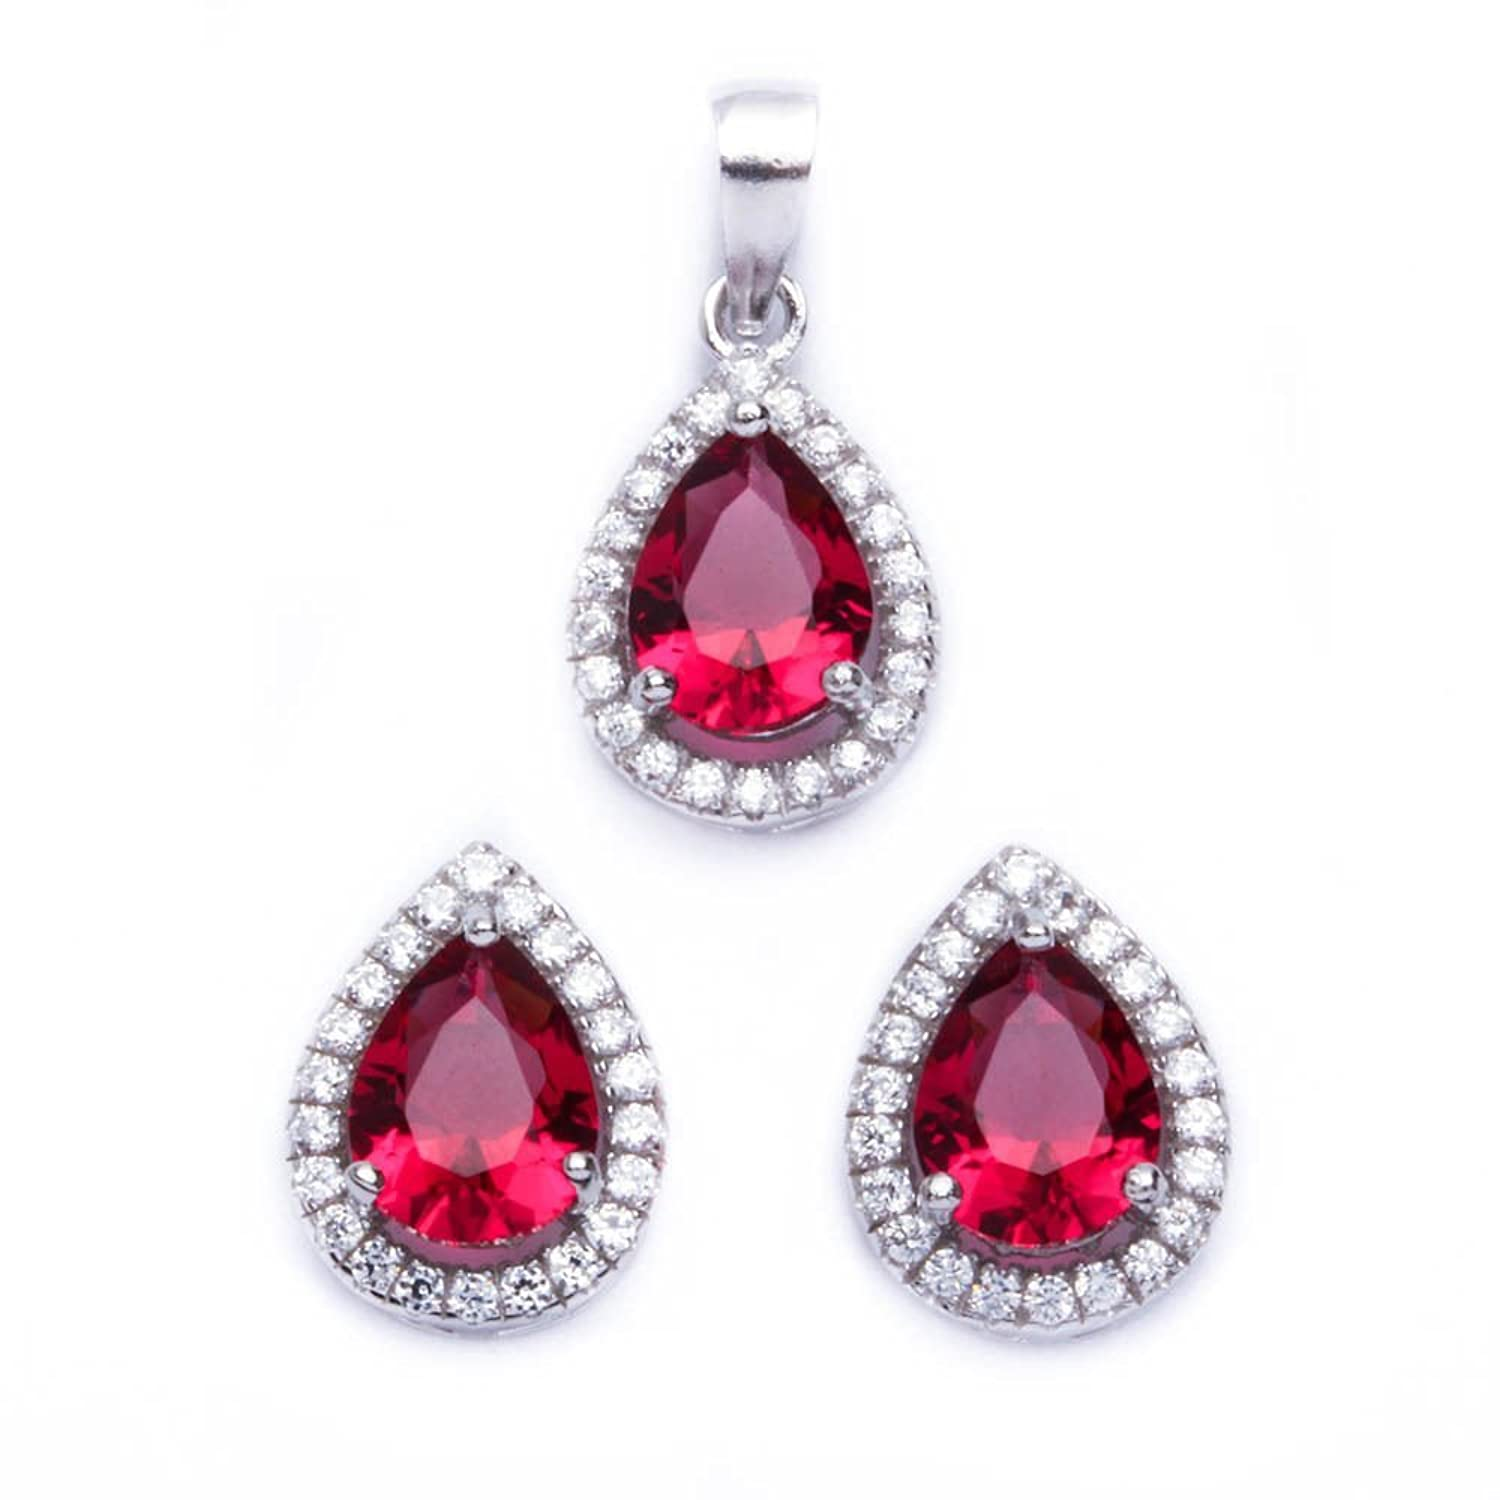 .925 Sterling Silver 2.50ct Pear Cut Simulated Ruby & Cz Earring & Pendant Jewelry set